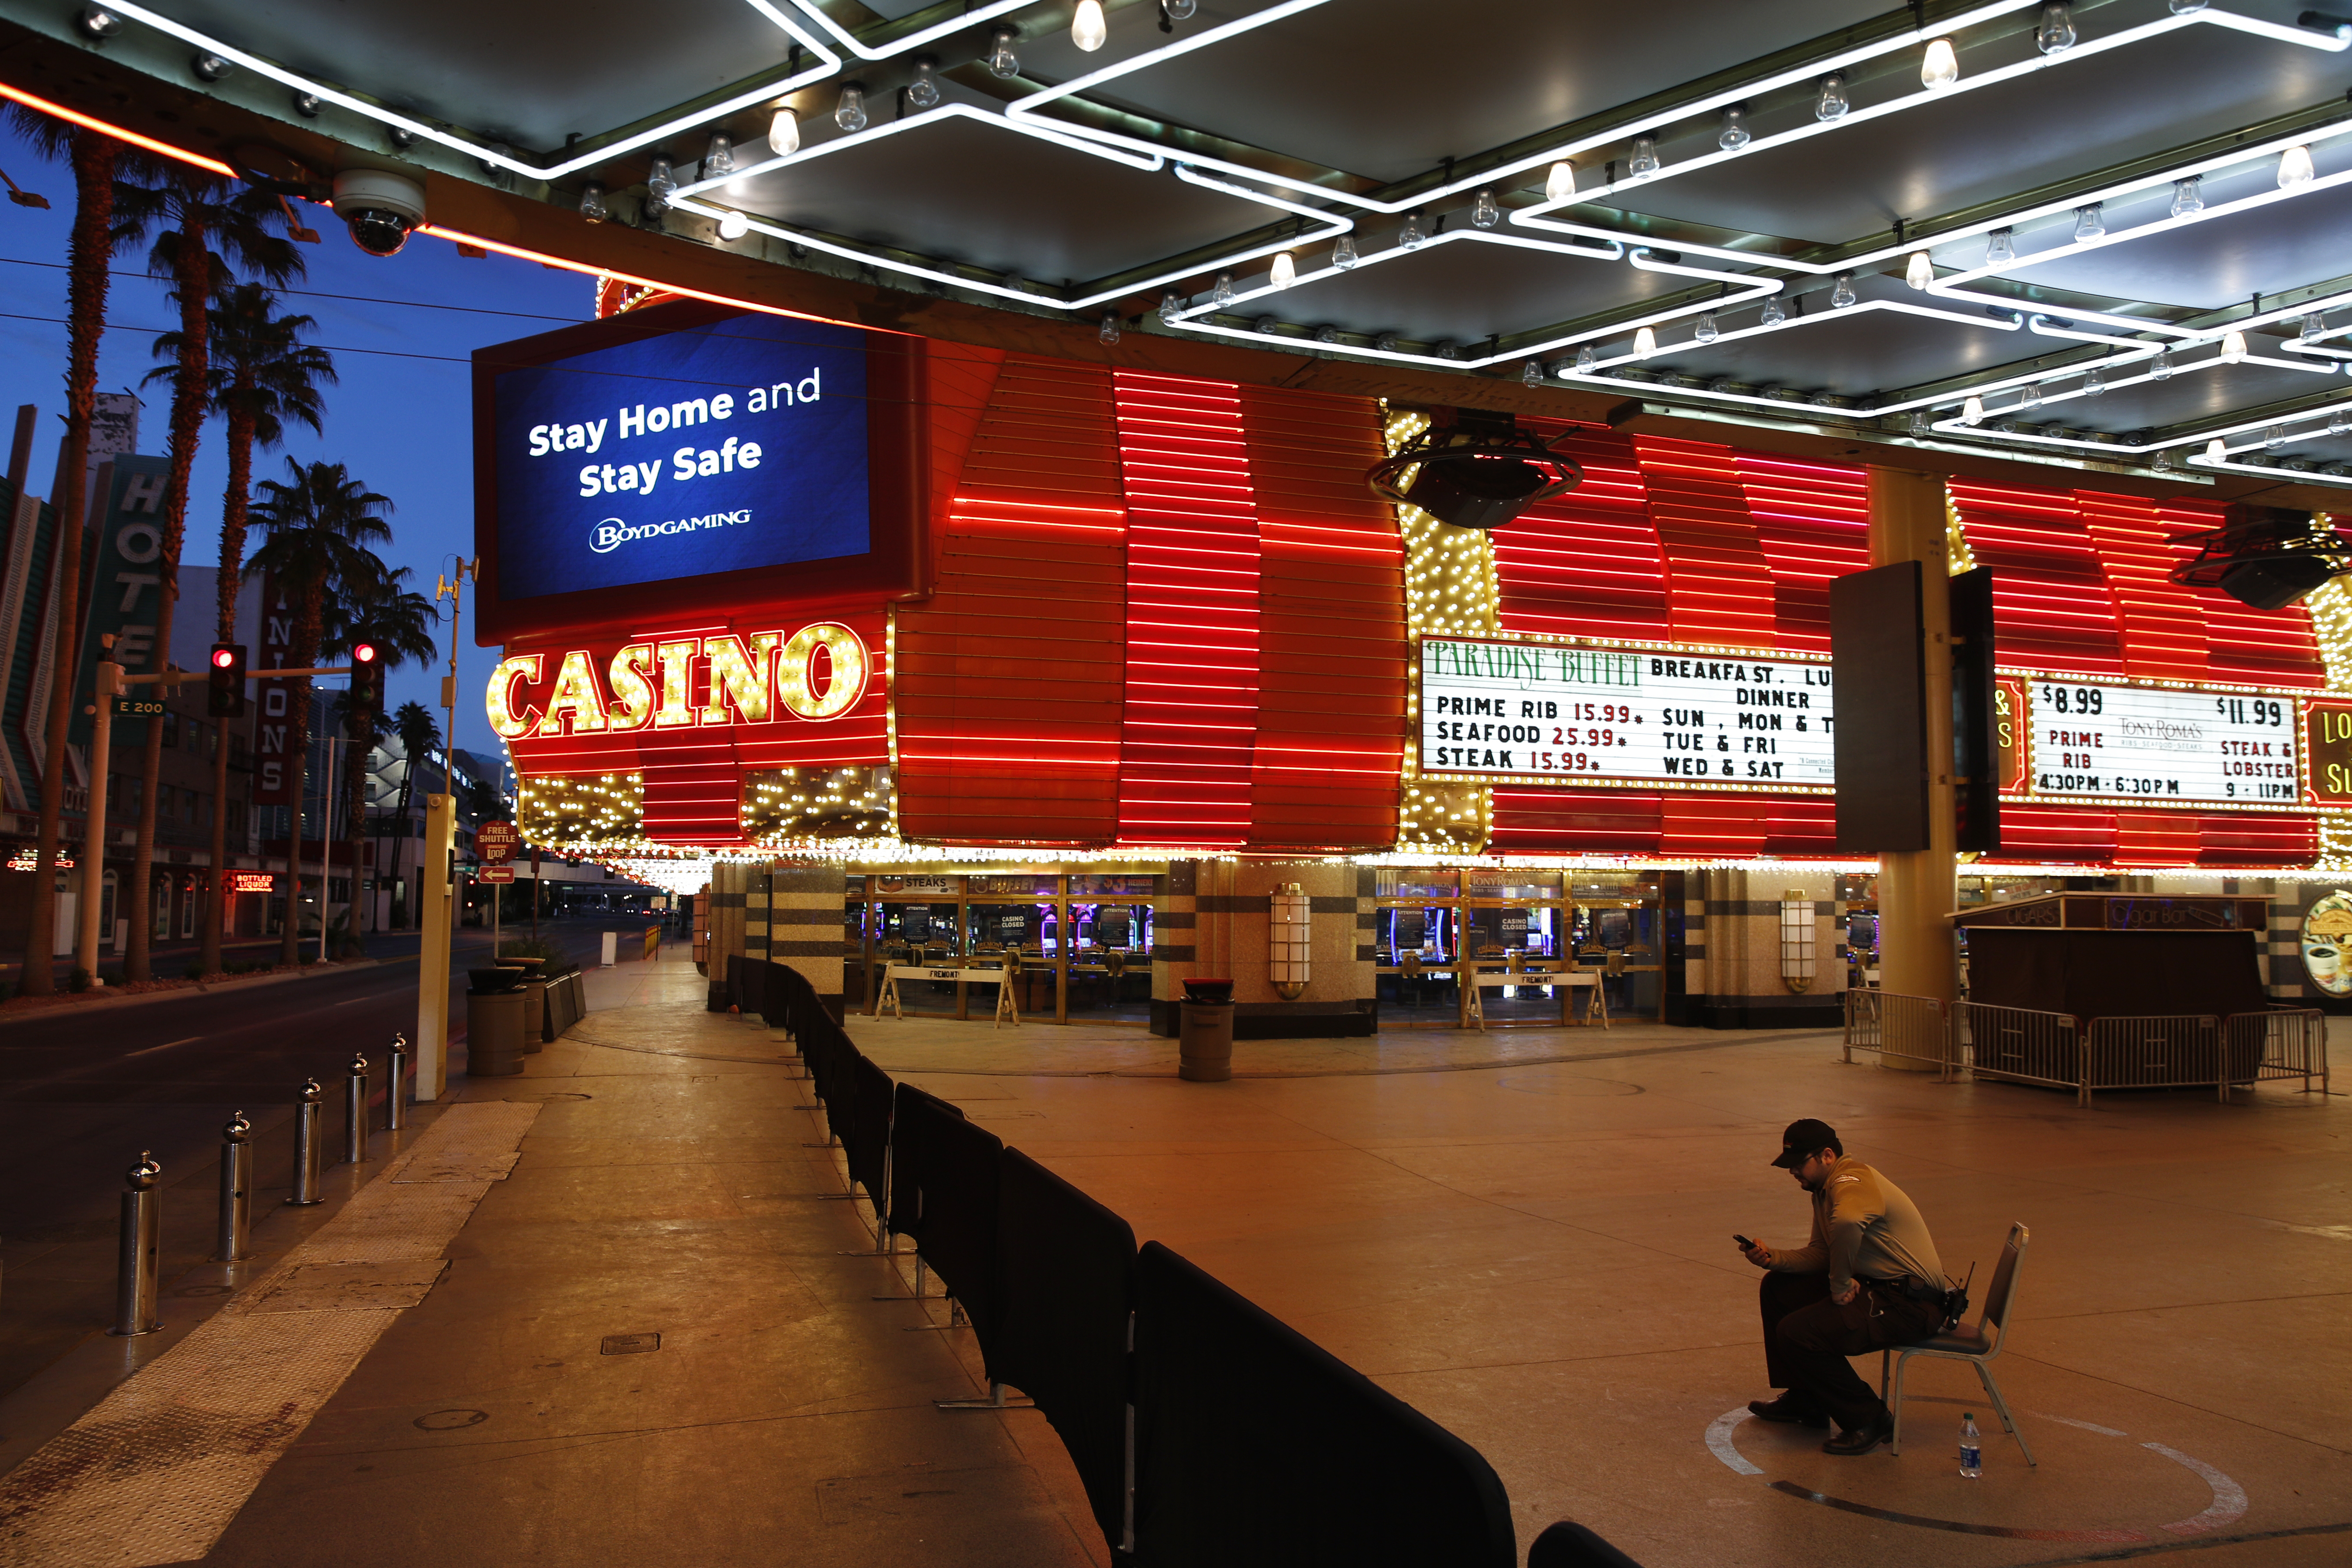 Workers Want Coronavirus Protections Before Casinos Reopen